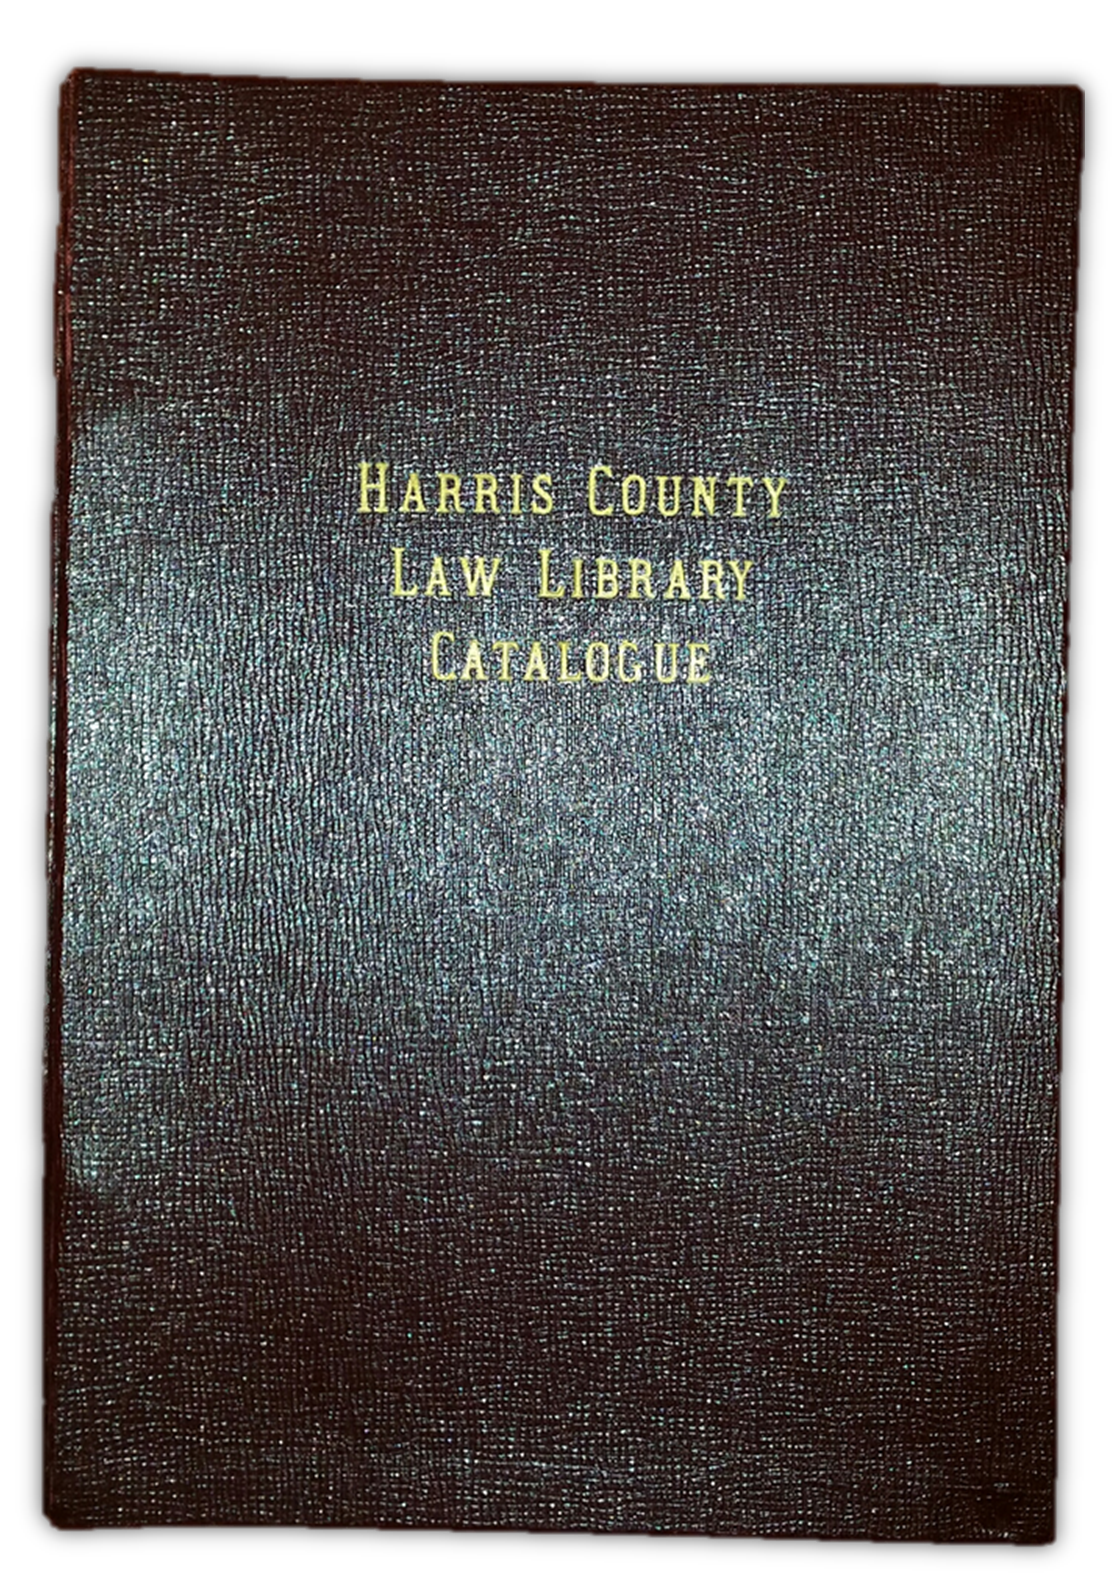 Harris County Law Library Catalogue - first published in 1949.  Click to enlarge .